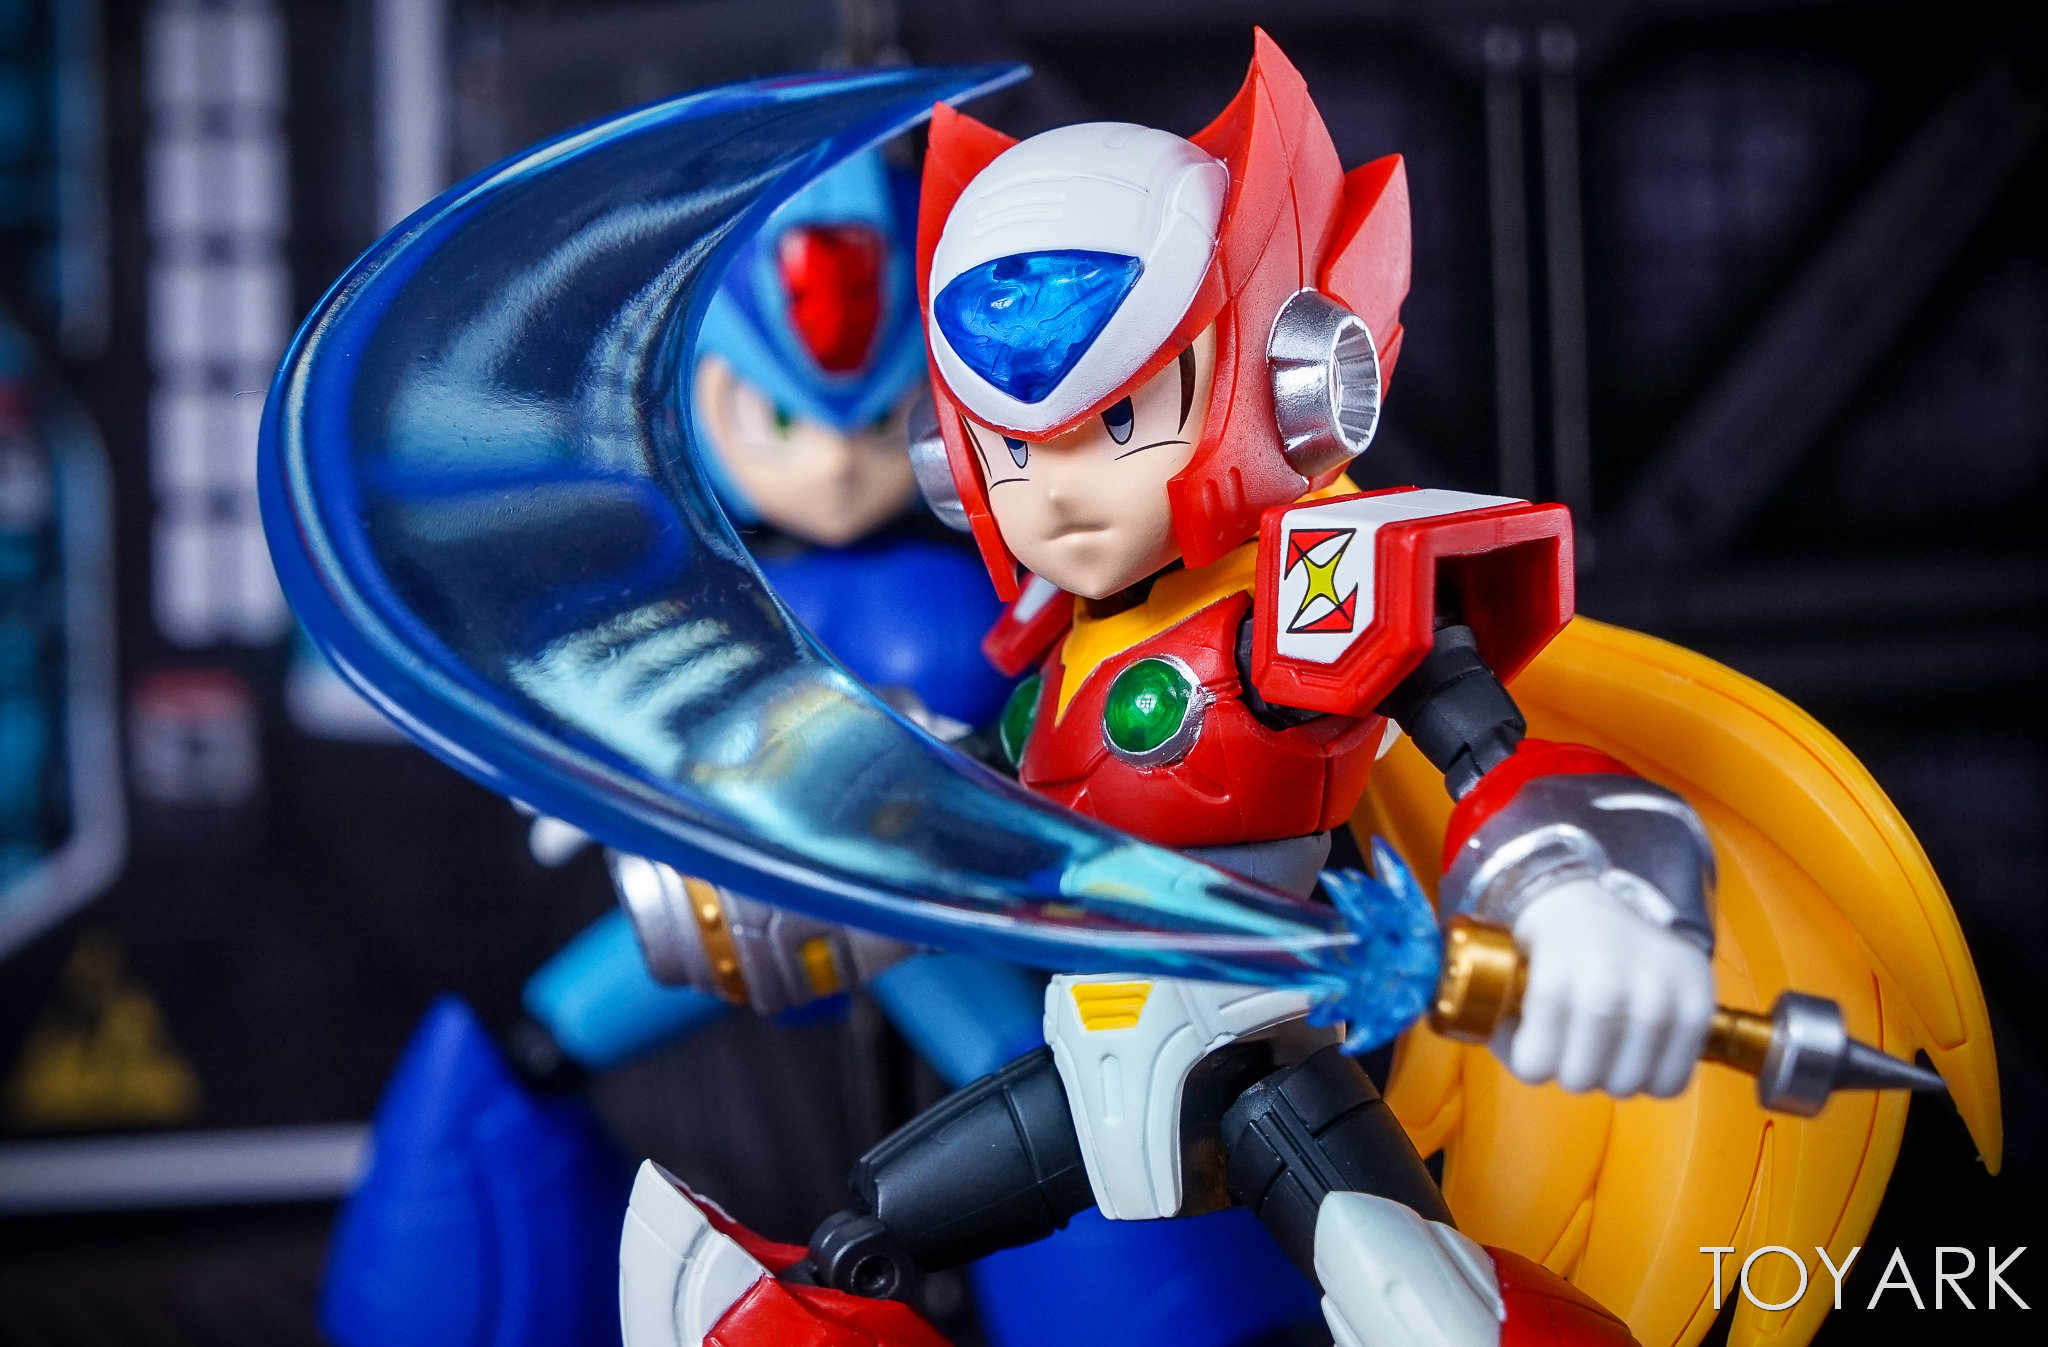 http://news.toyark.com/wp-content/uploads/sites/4/2017/11/Mega-Man-X-NX-Edge-Style-044.jpg